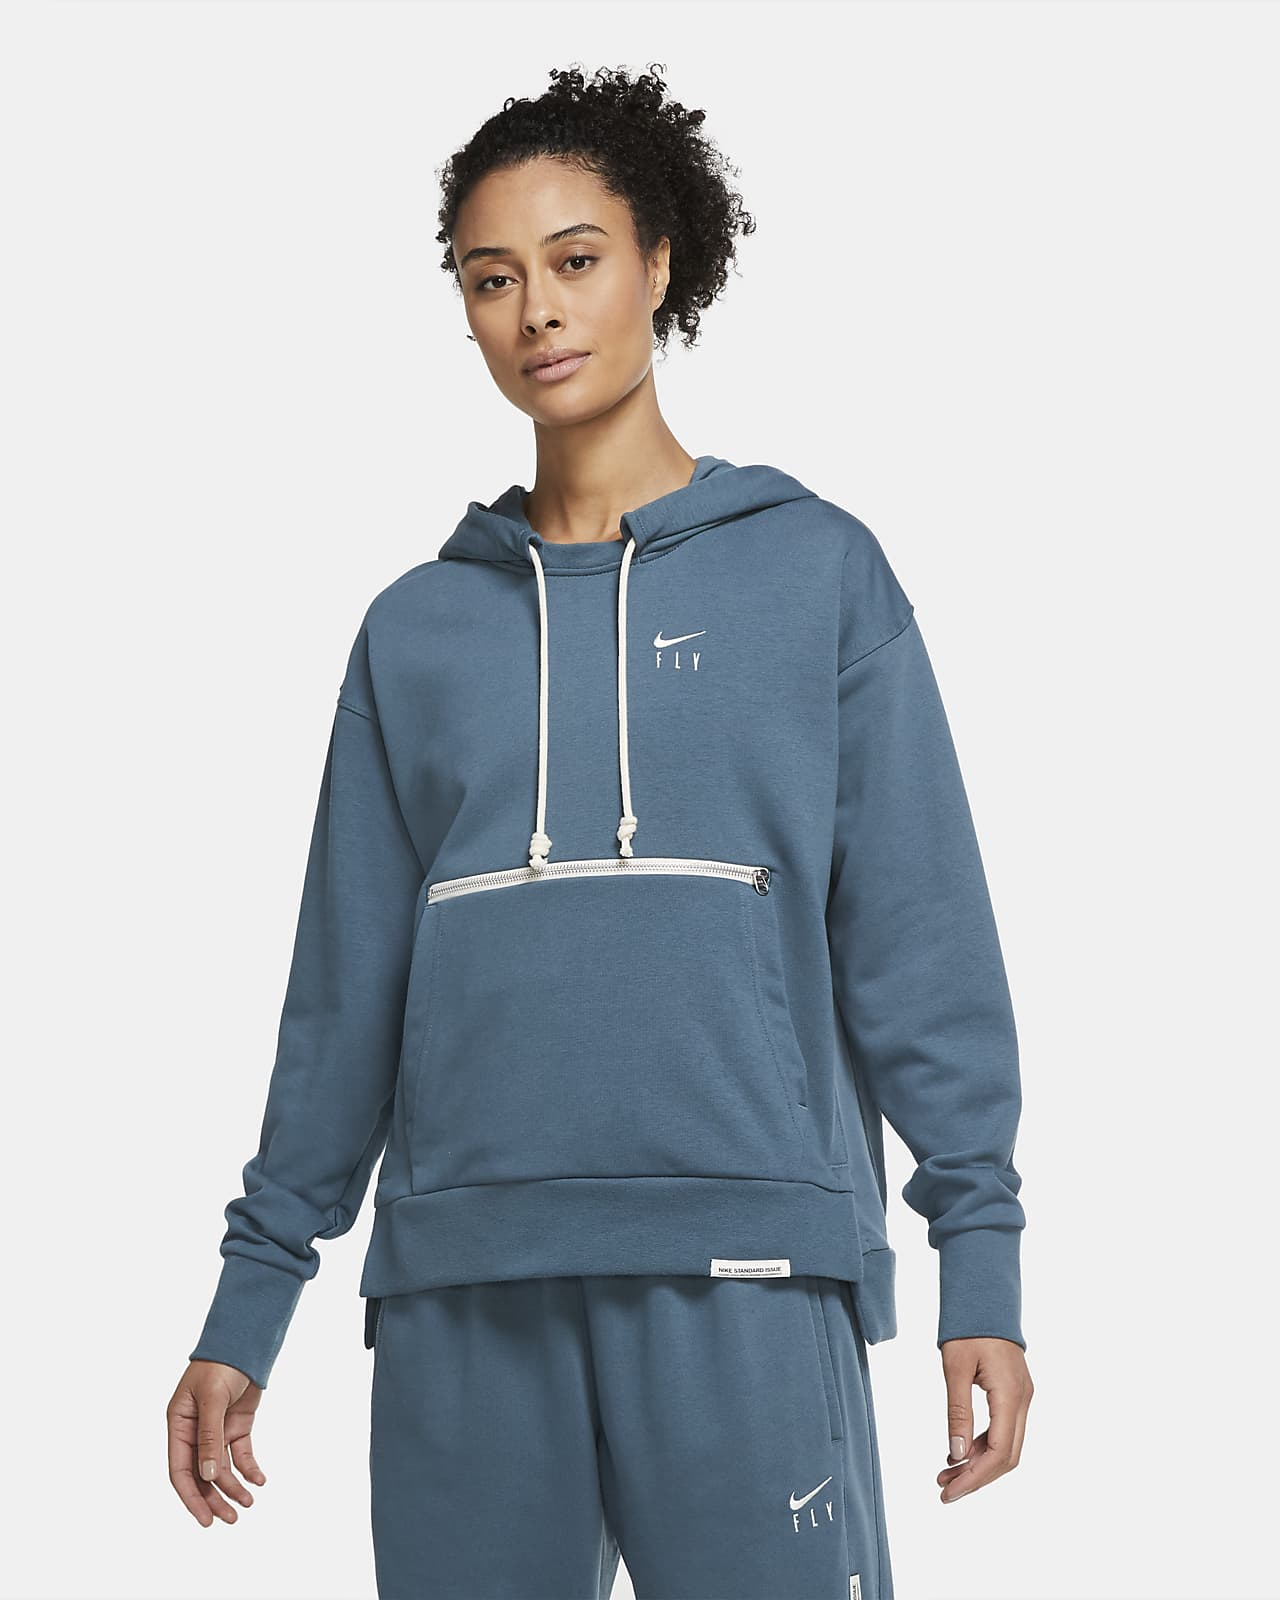 Nike Swoosh Fly Standard Issue Women's Basketball Pullover Hoodie